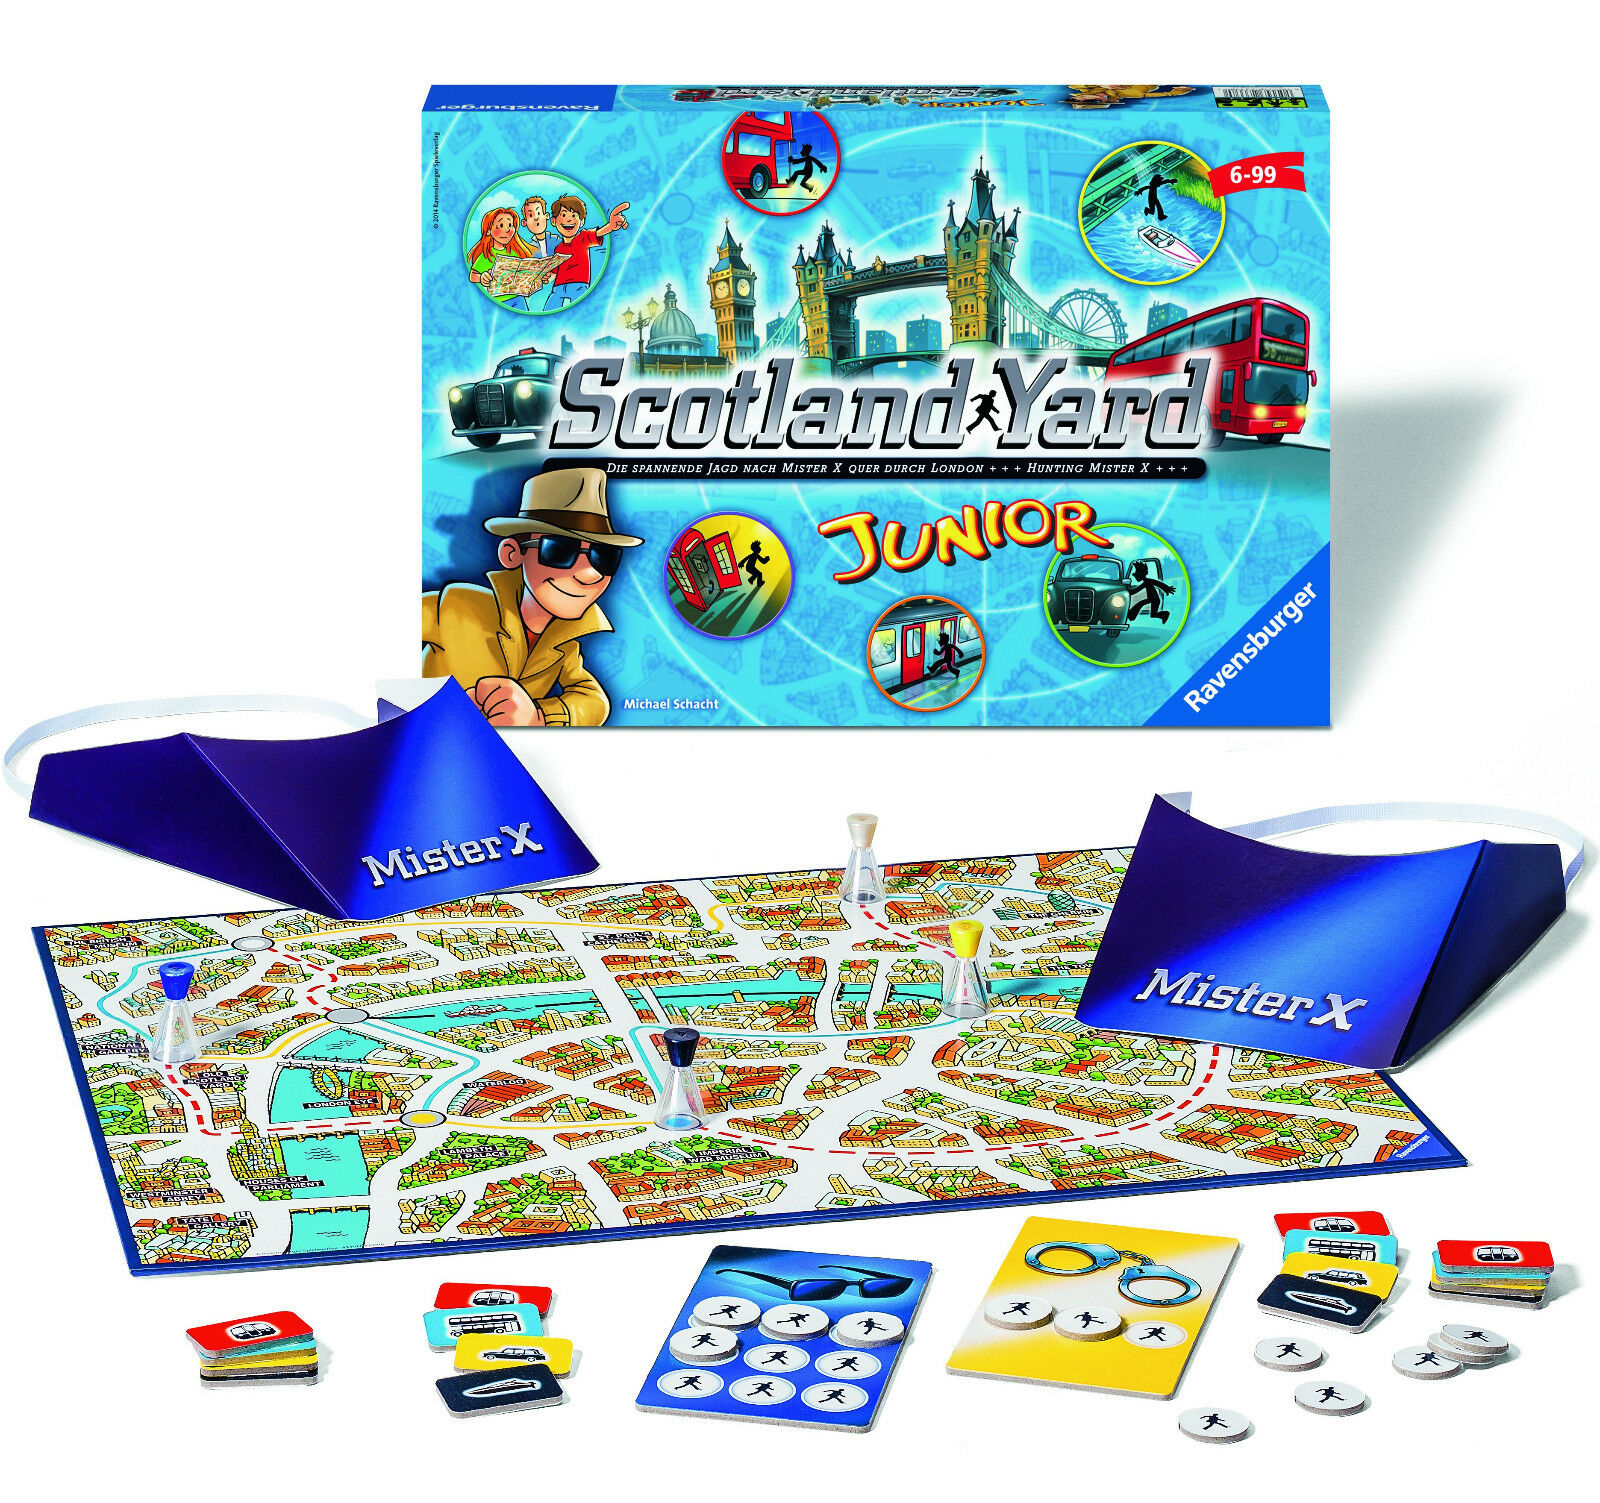 RAVENSBURGER YARD 22289 - SCOTLAND YARD RAVENSBURGER JUNIOR, NEU OVP b2a63b